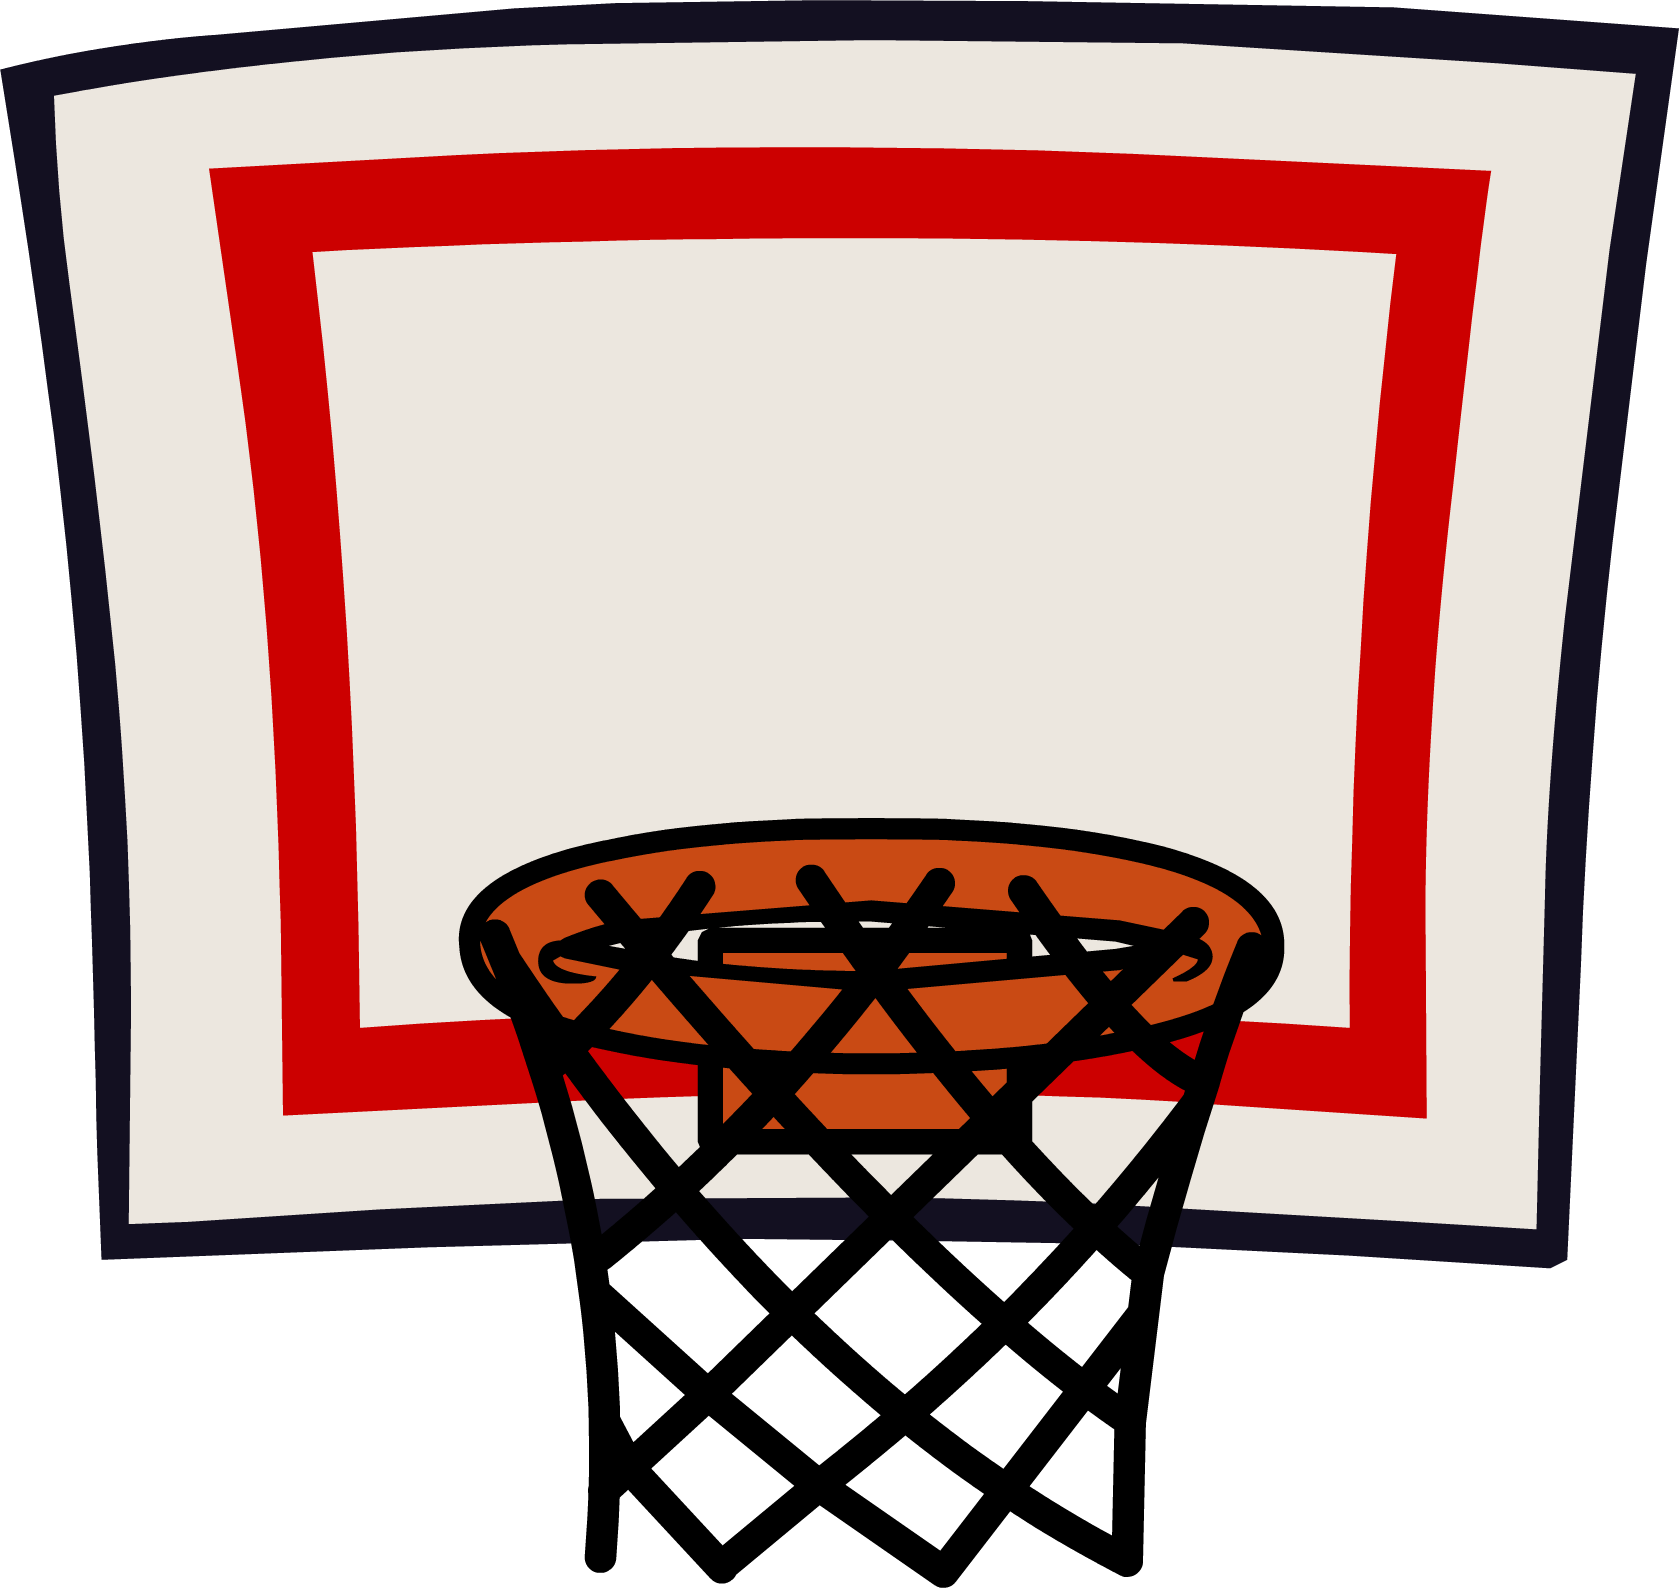 Basketball hoop side view clipart free banner free Hoop basketball ring net clipart 2 - Clipartix banner free